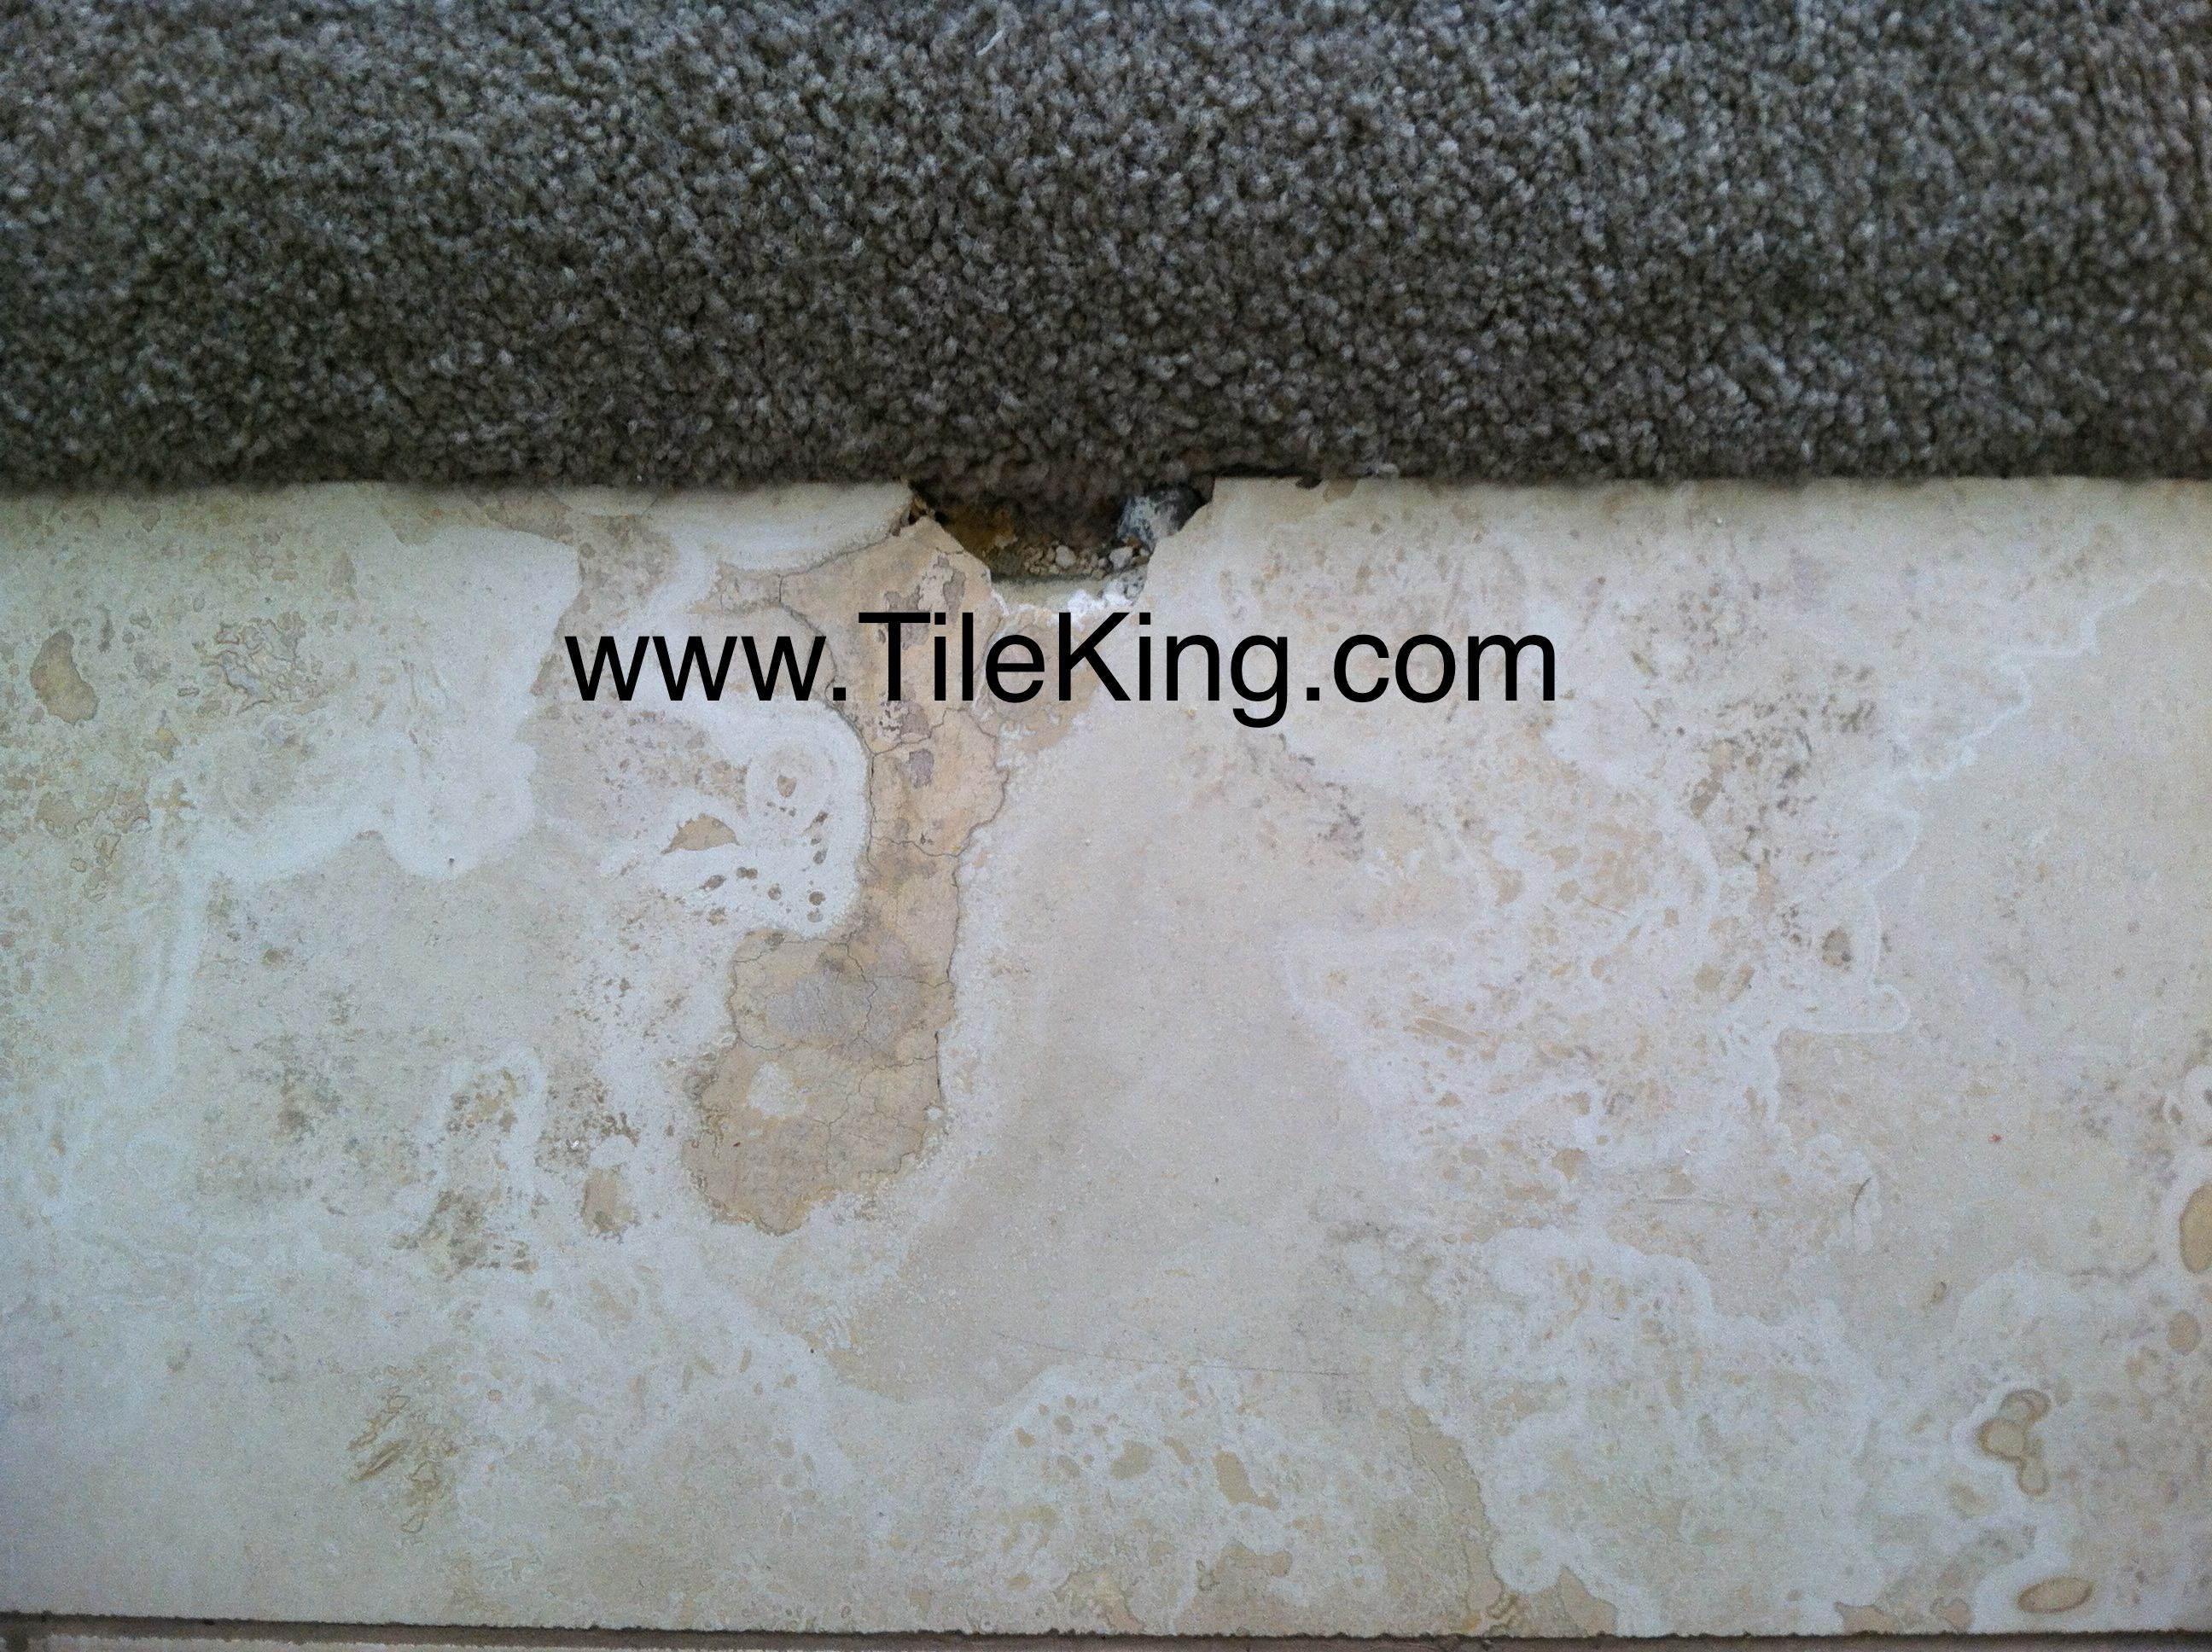 travertine cracked and broken before repairs